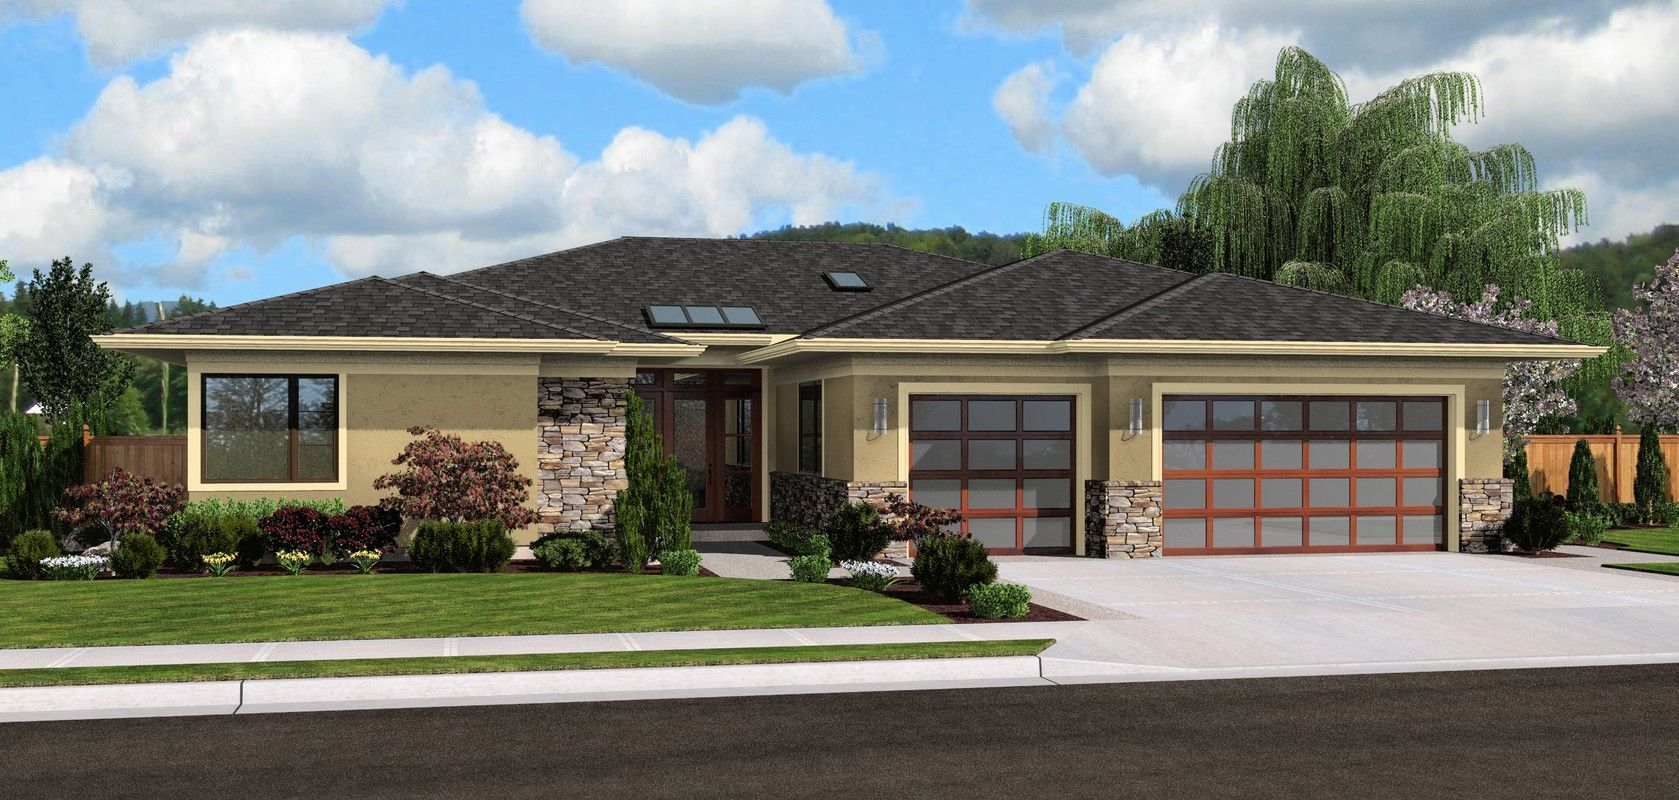 Mascord plan 1245 the riverside printed the home for Modern ranch plans